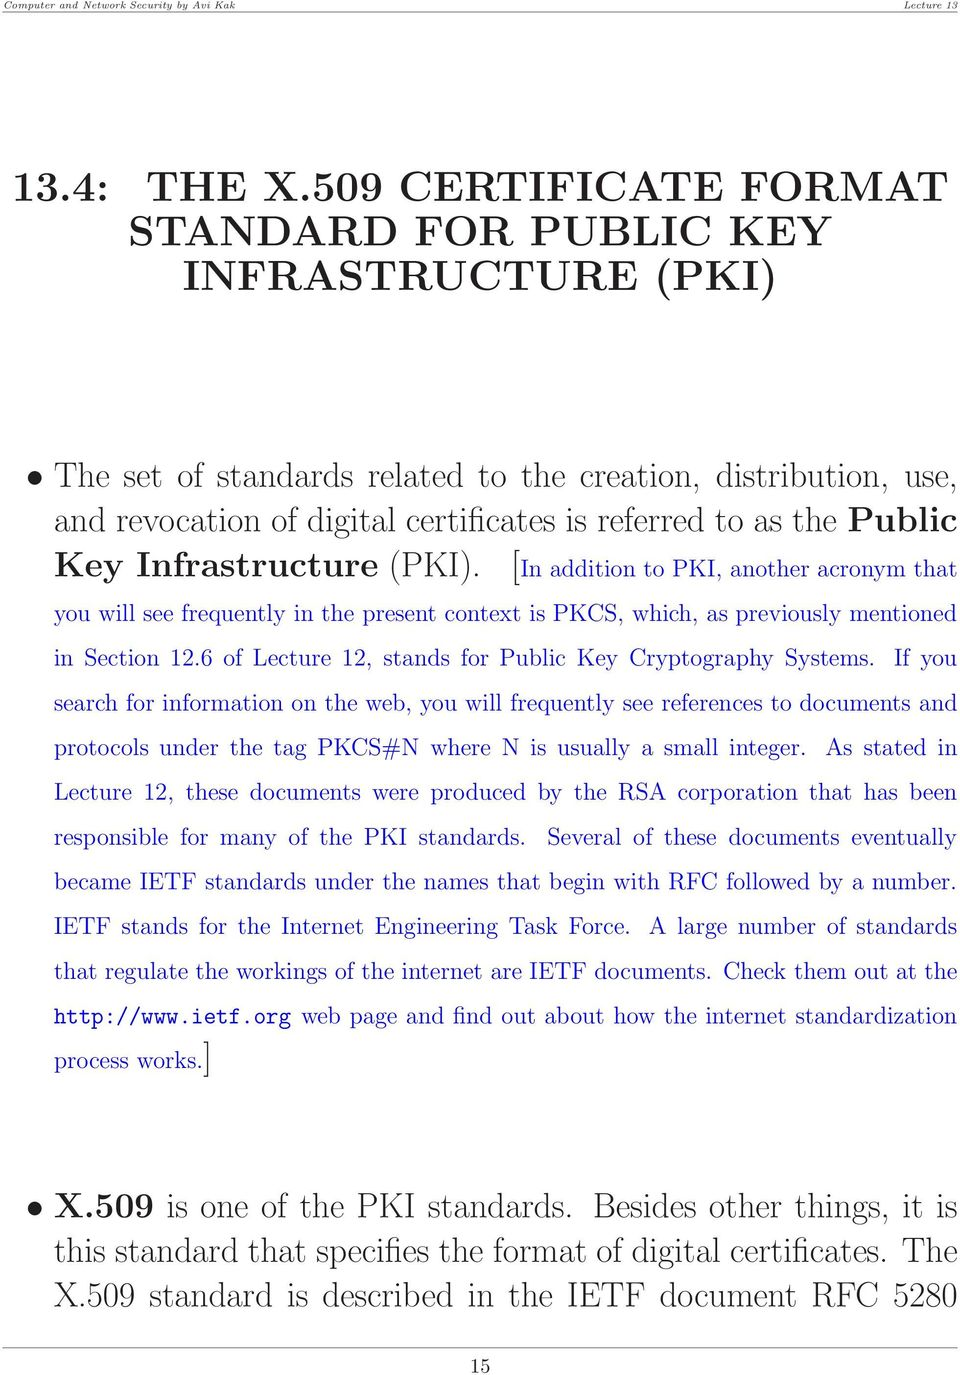 Lecture 13 Certificates Digital Signatures And The Diffie Hellman